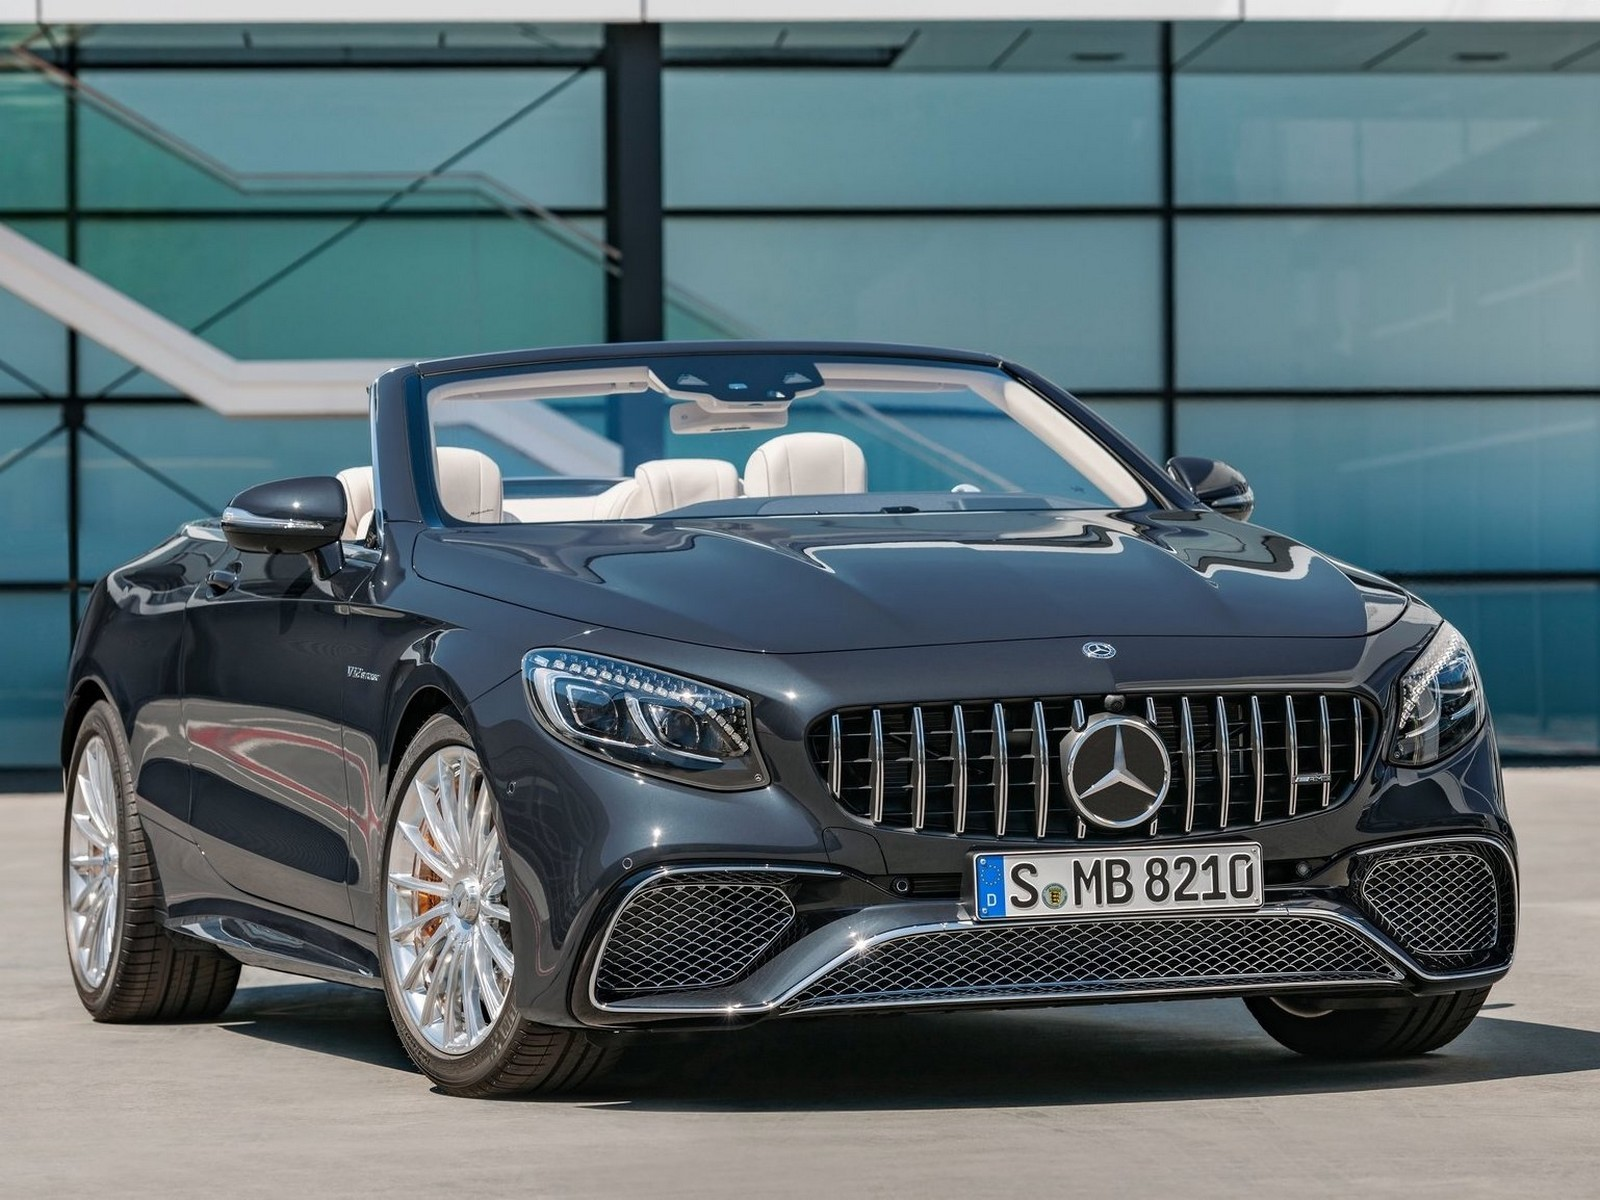 mercedes s65 amg cabriolet 2018 le vaisseau amiral de la marque. Black Bedroom Furniture Sets. Home Design Ideas